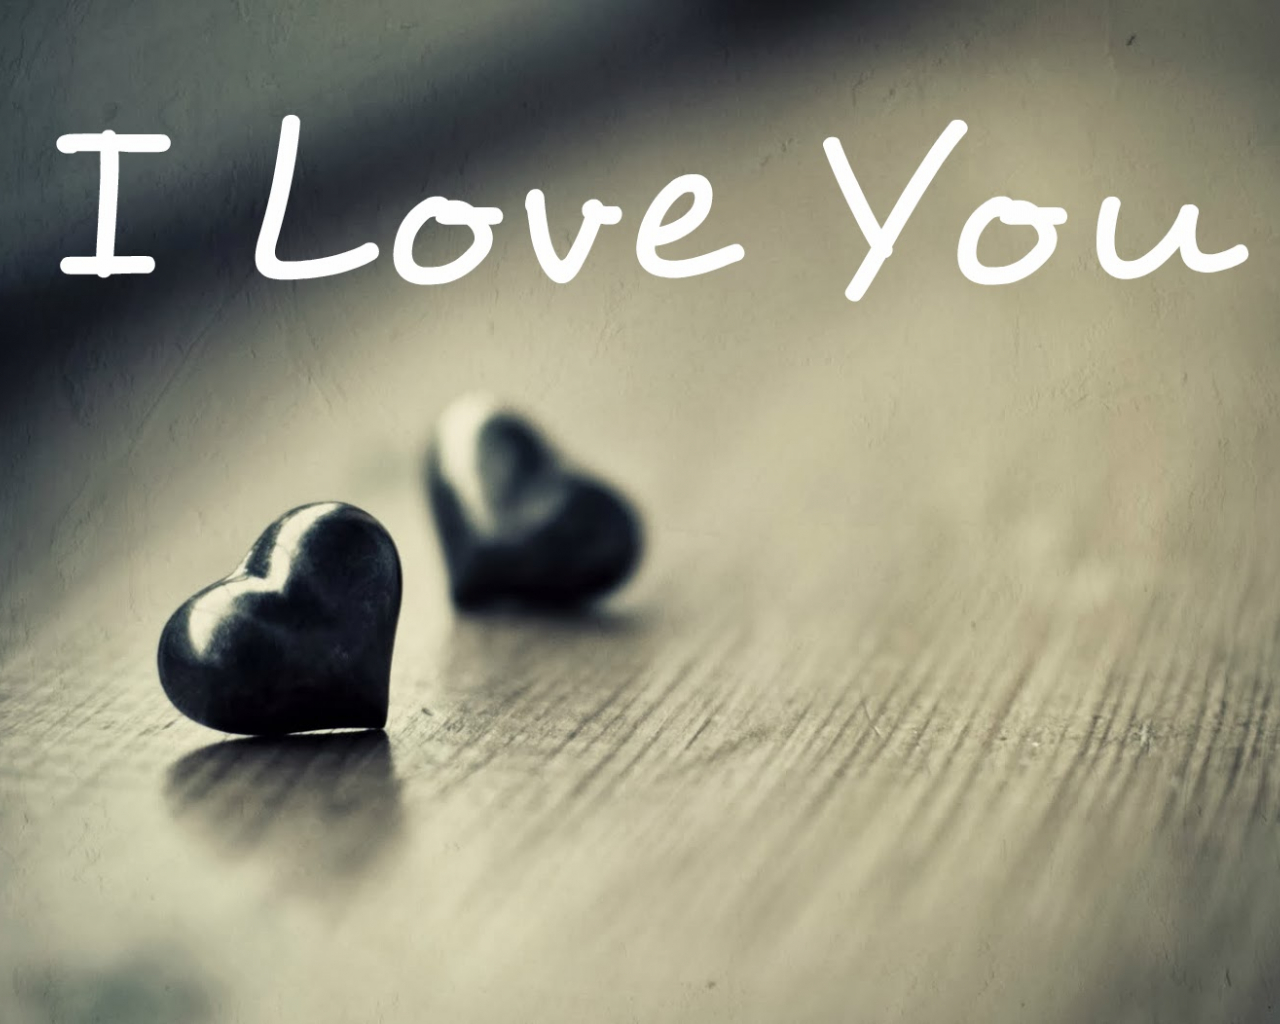 Free Download Happy Valentines Day I Love You Wallpaper Hd Download 1500x1052 For Your Desktop Mobile Tablet Explore 78 Love You Backgrounds I Love Wallpaper Love Images Wallpaper Background Wallpaper Love